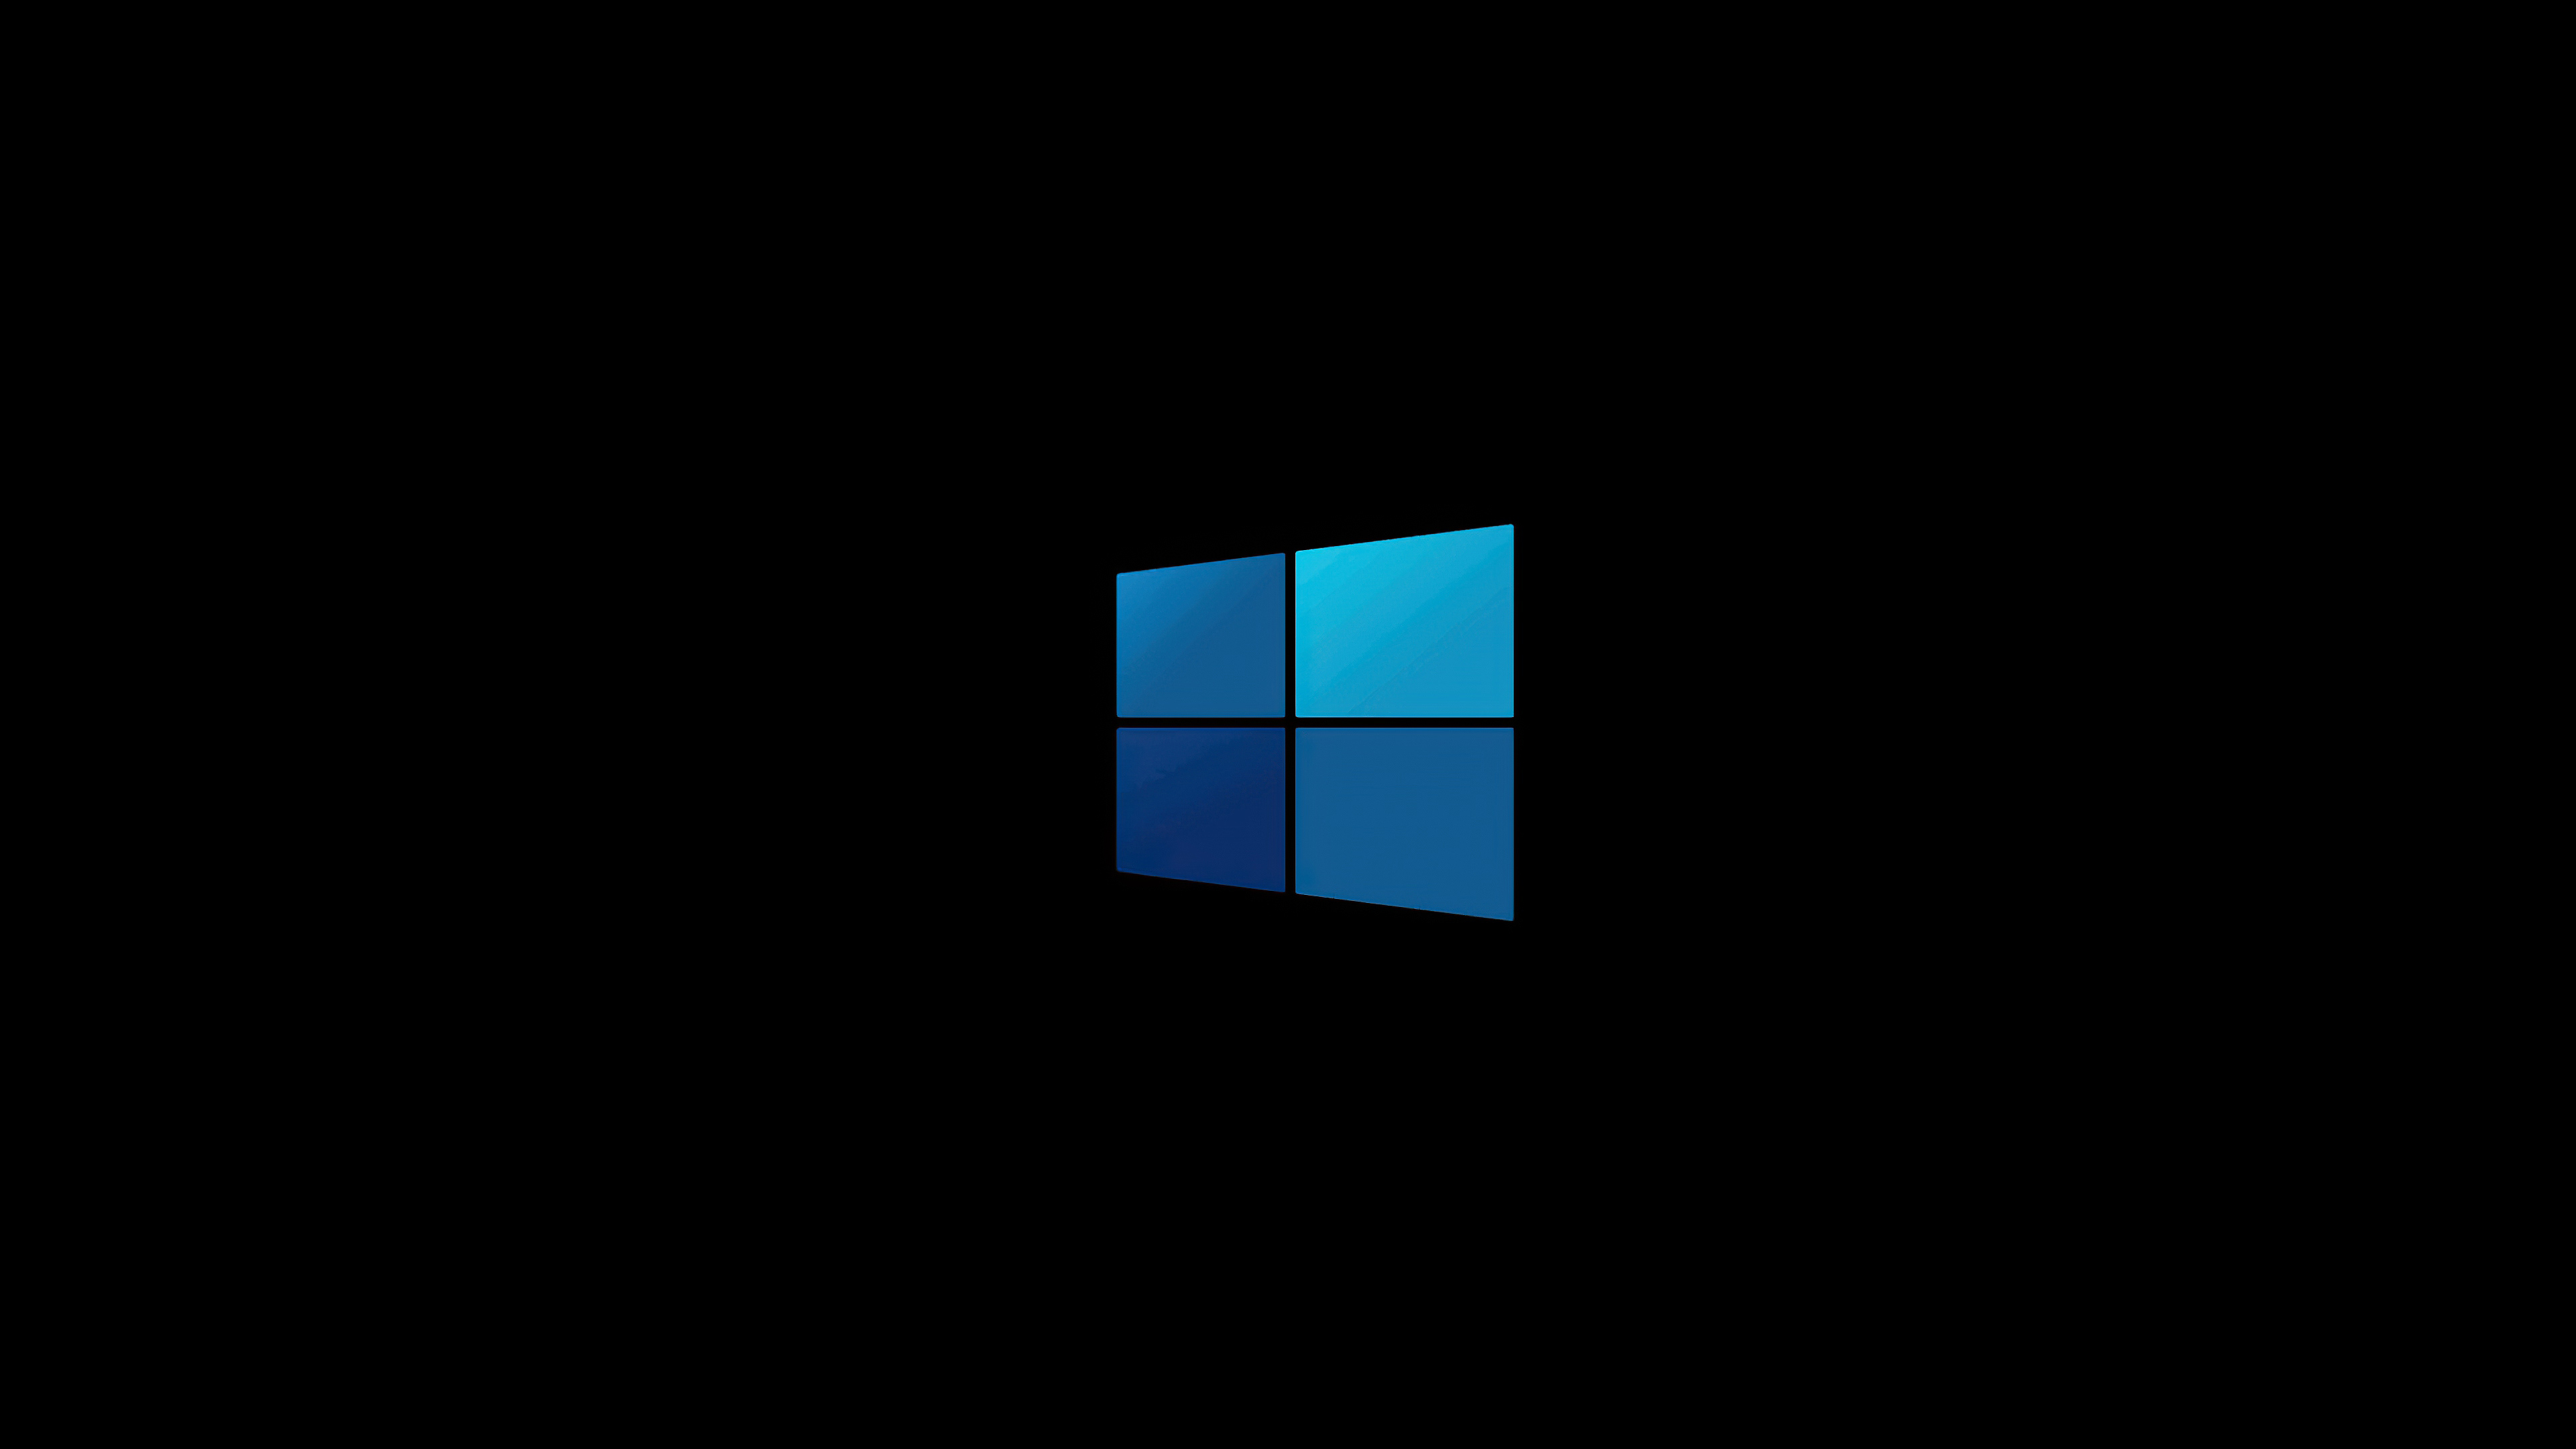 2048x2048 Windows 10 Minimal Logo 4k Ipad Air Hd 4k Wallpapers